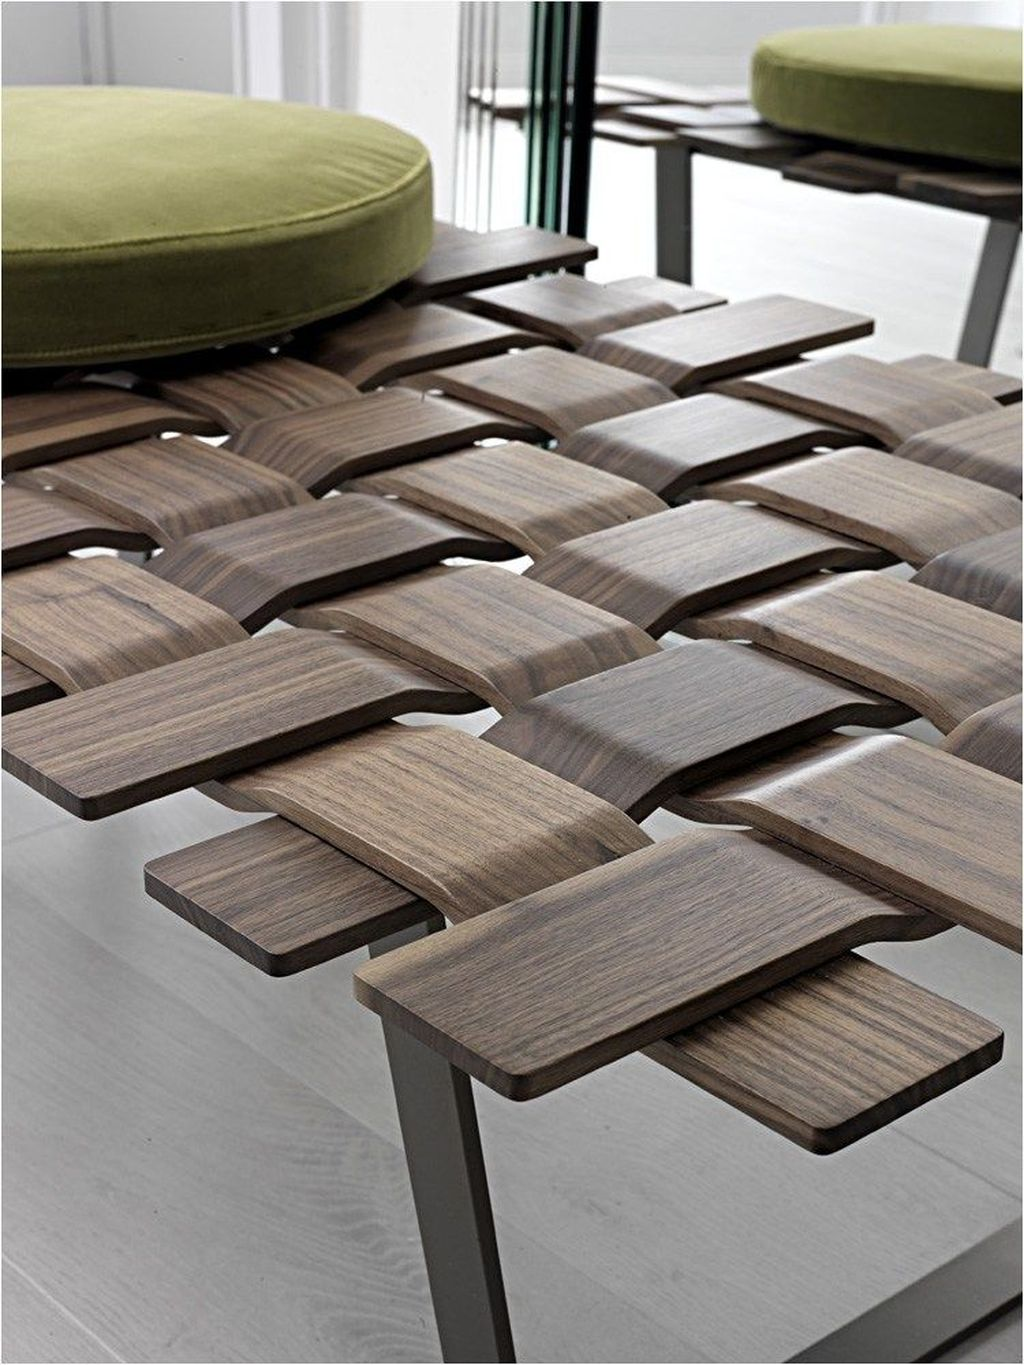 Best Wooden Furniture Design Ideas To Decorate Your Home 32